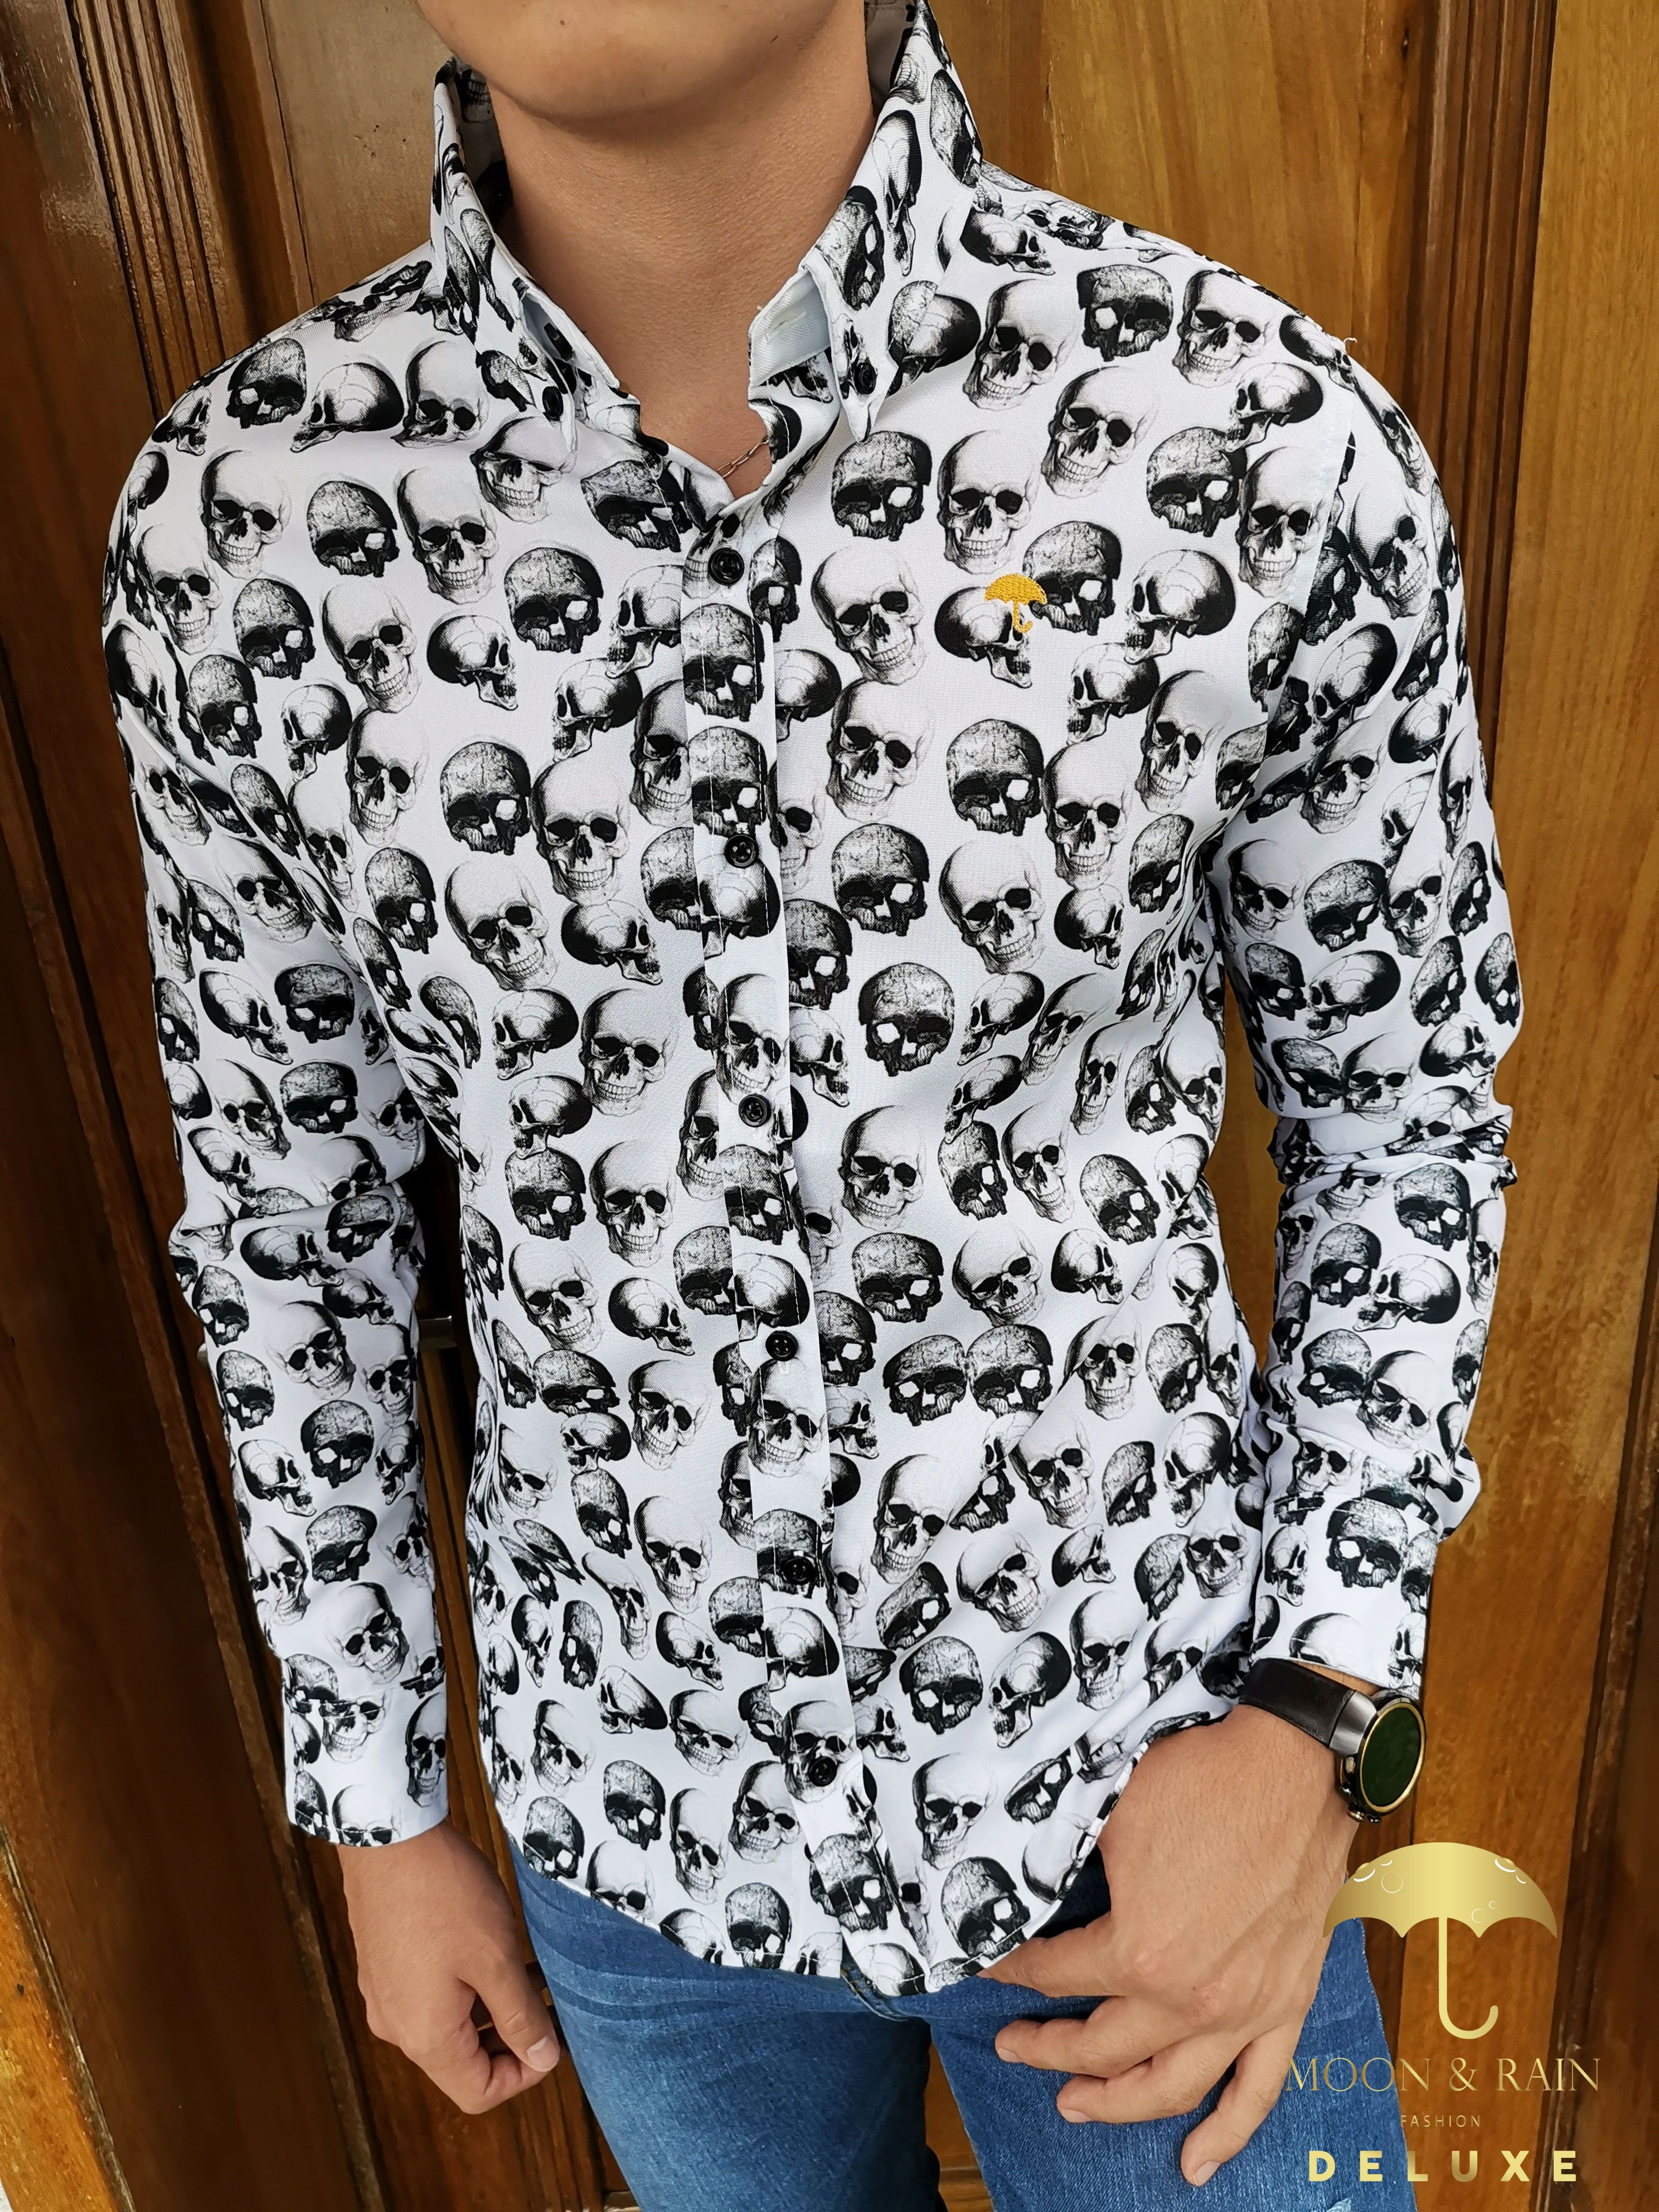 Camisa Blanca Calaveras Negras Mens Tops Shirts Slim Fit